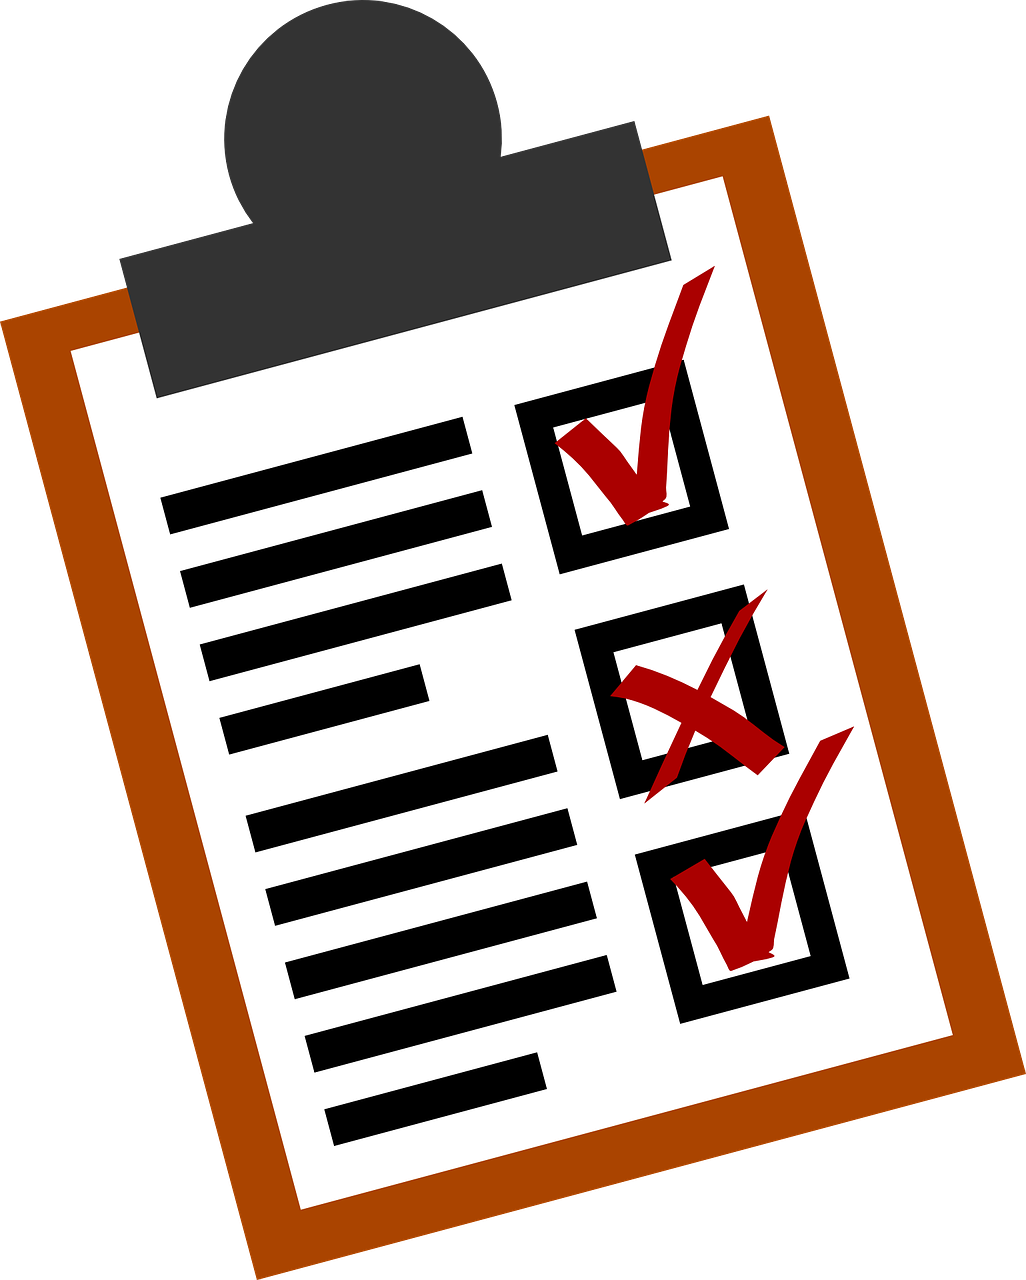 Organized clipart checklist. Retargeting a campaign settings